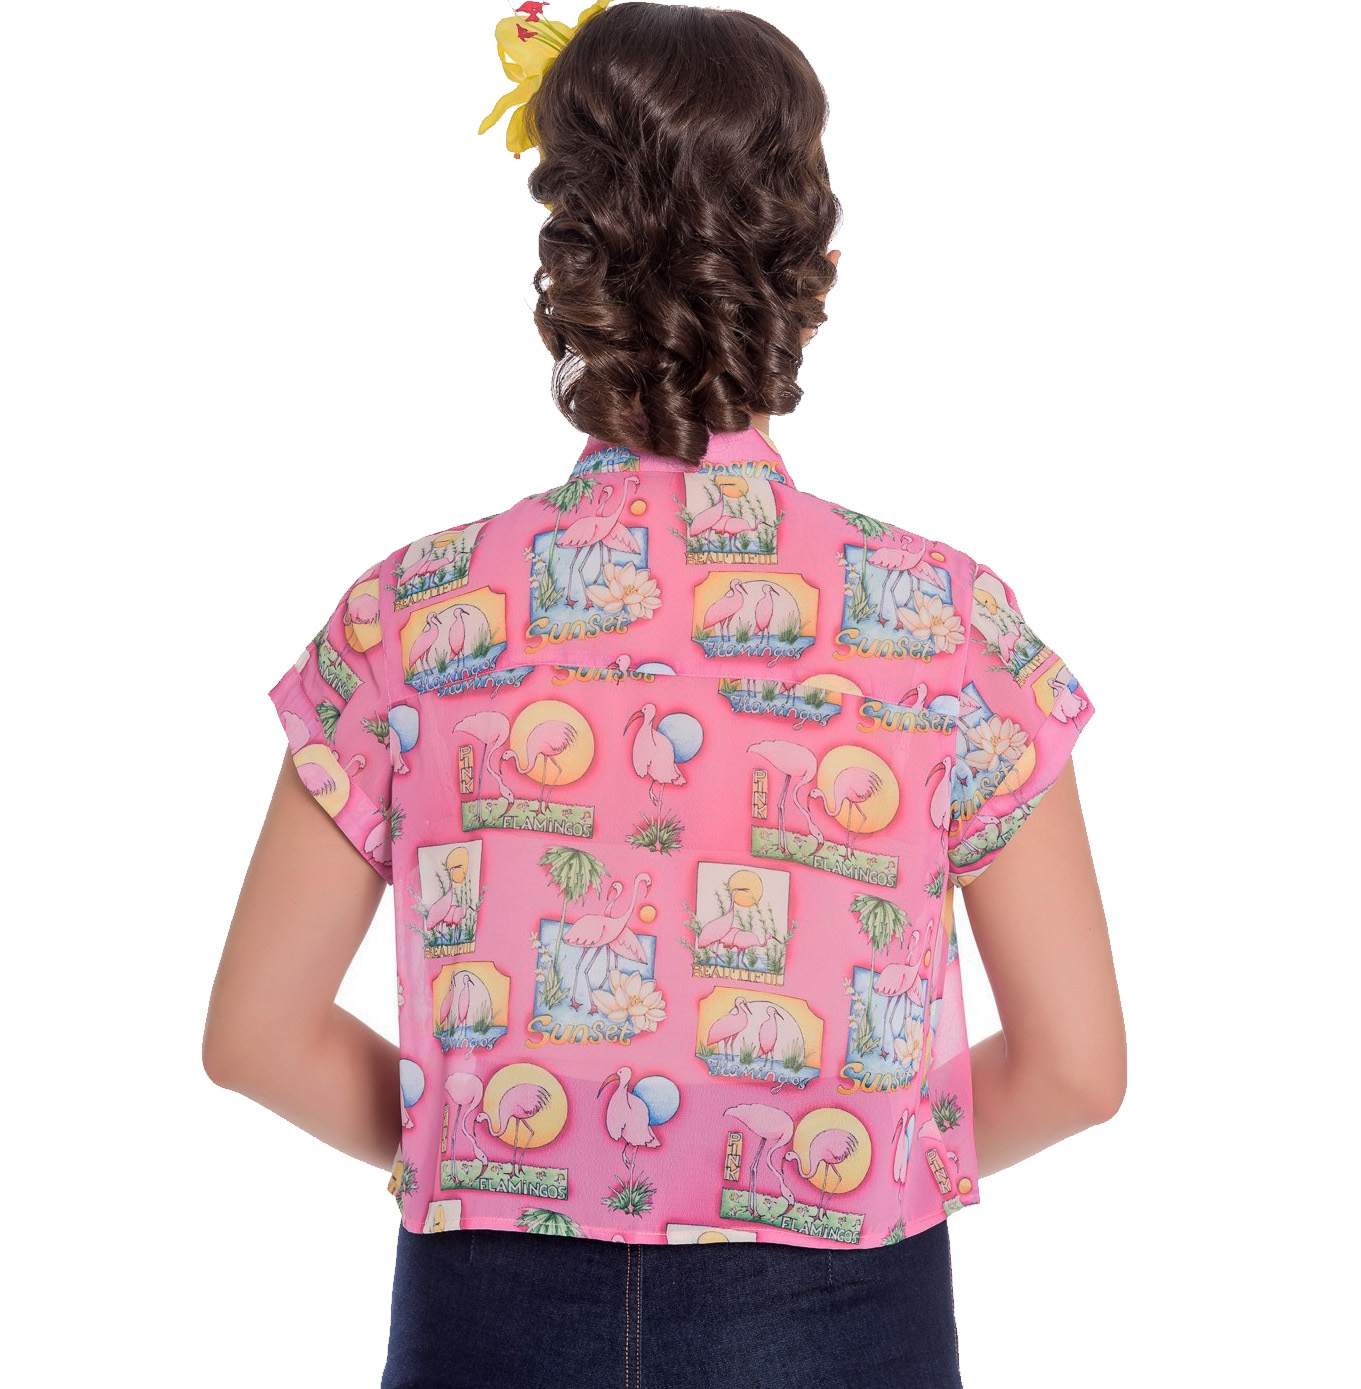 Hell-Bunny-50s-Retro-Top-Pink-Flamingo-MAXINE-Cropped-Blouse-Shirt-All-Sizes thumbnail 25